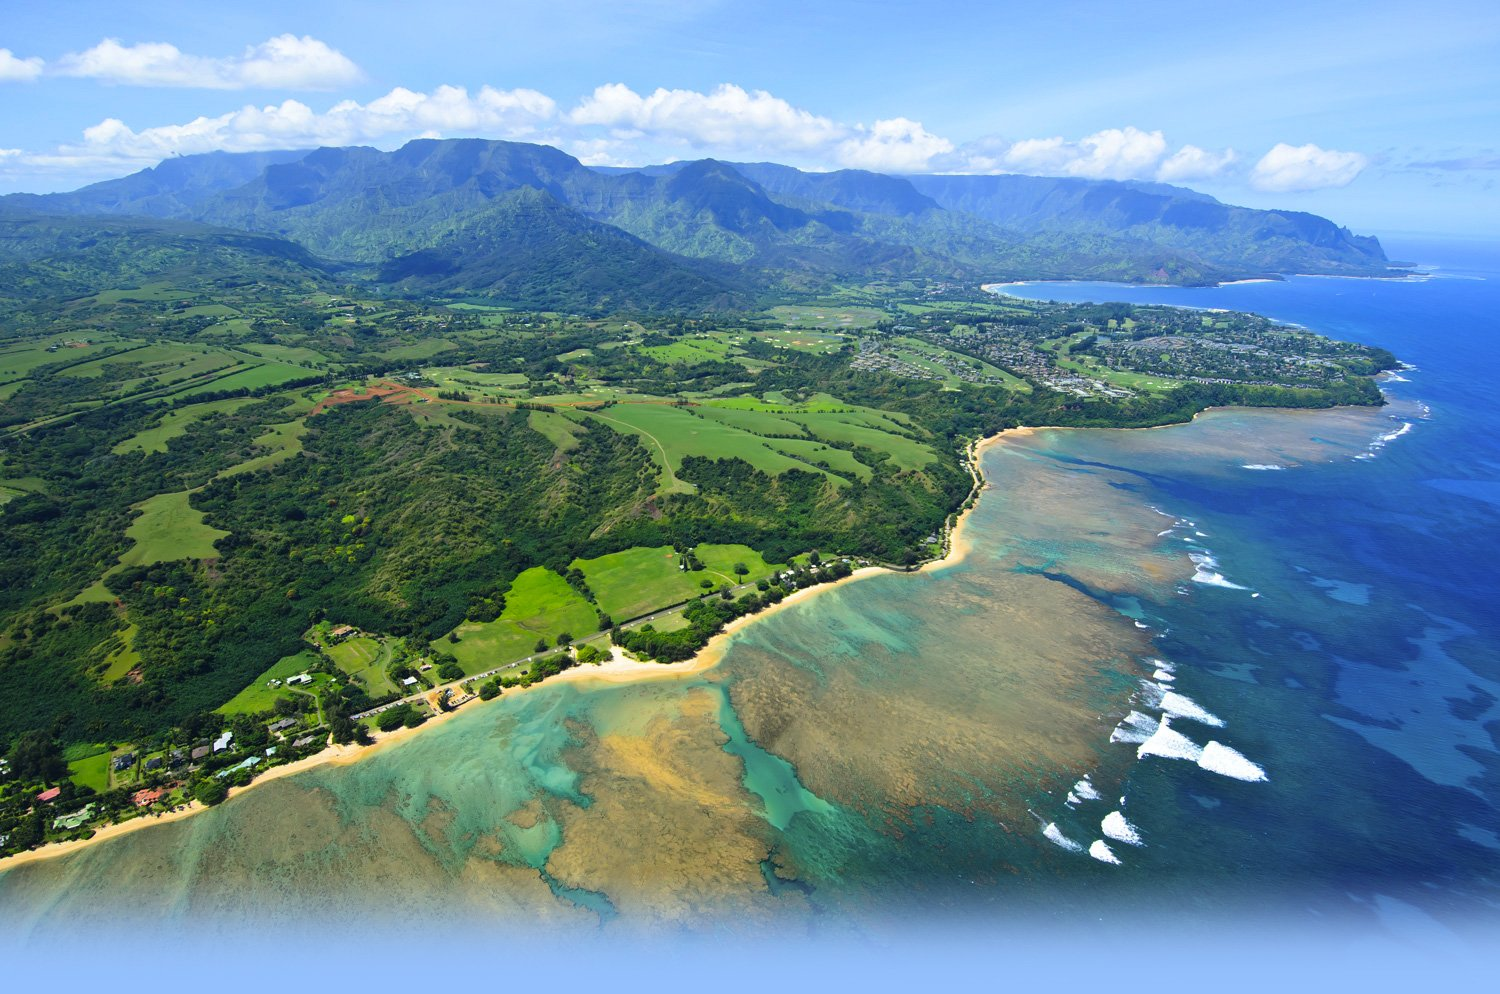 2nd Annual Prince Invitational Tournament Results, Princeville Kauai